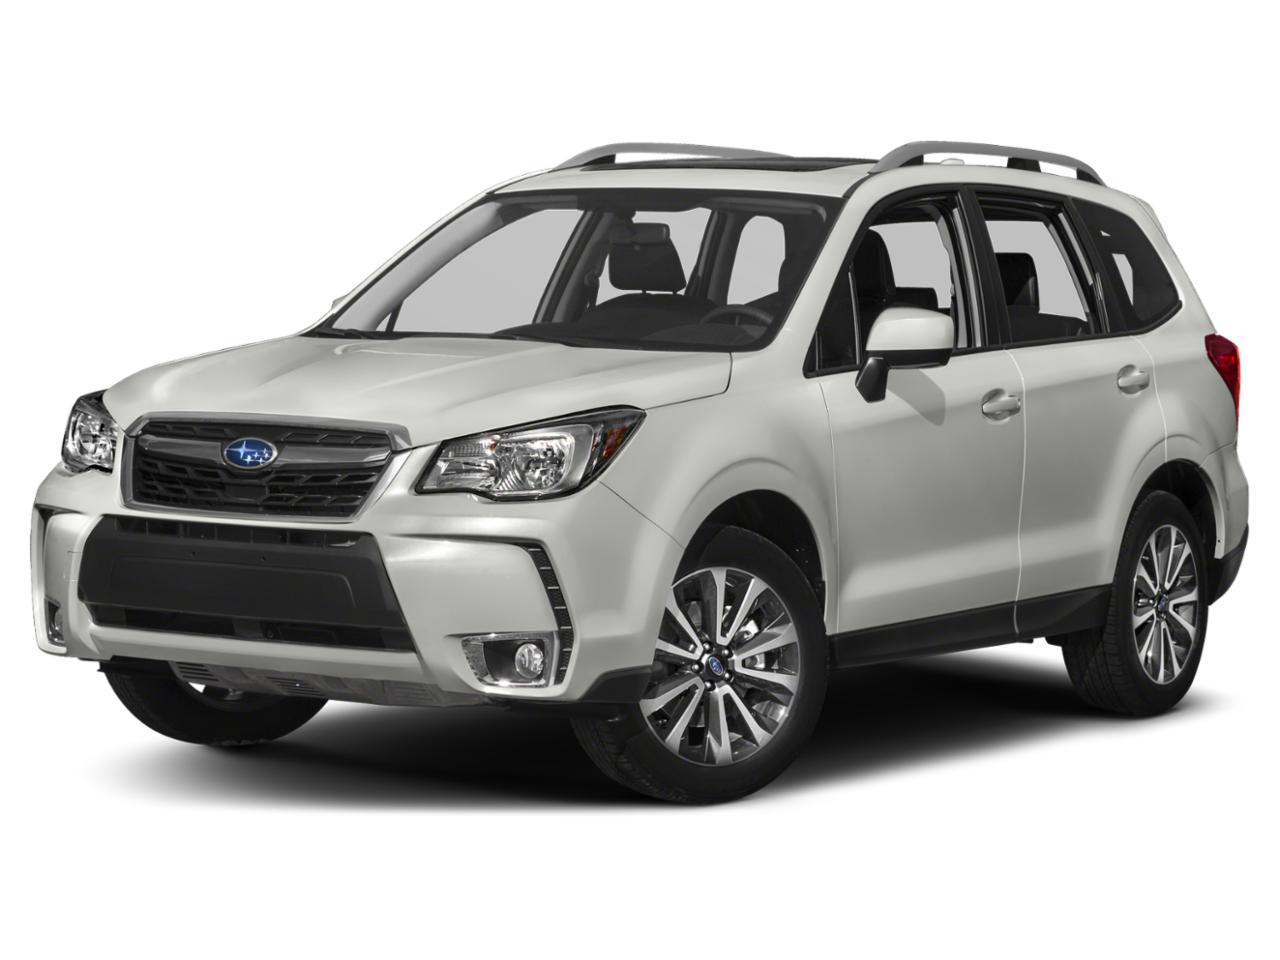 2018 Subaru Forester Vehicle Photo in Casper, WY 82609